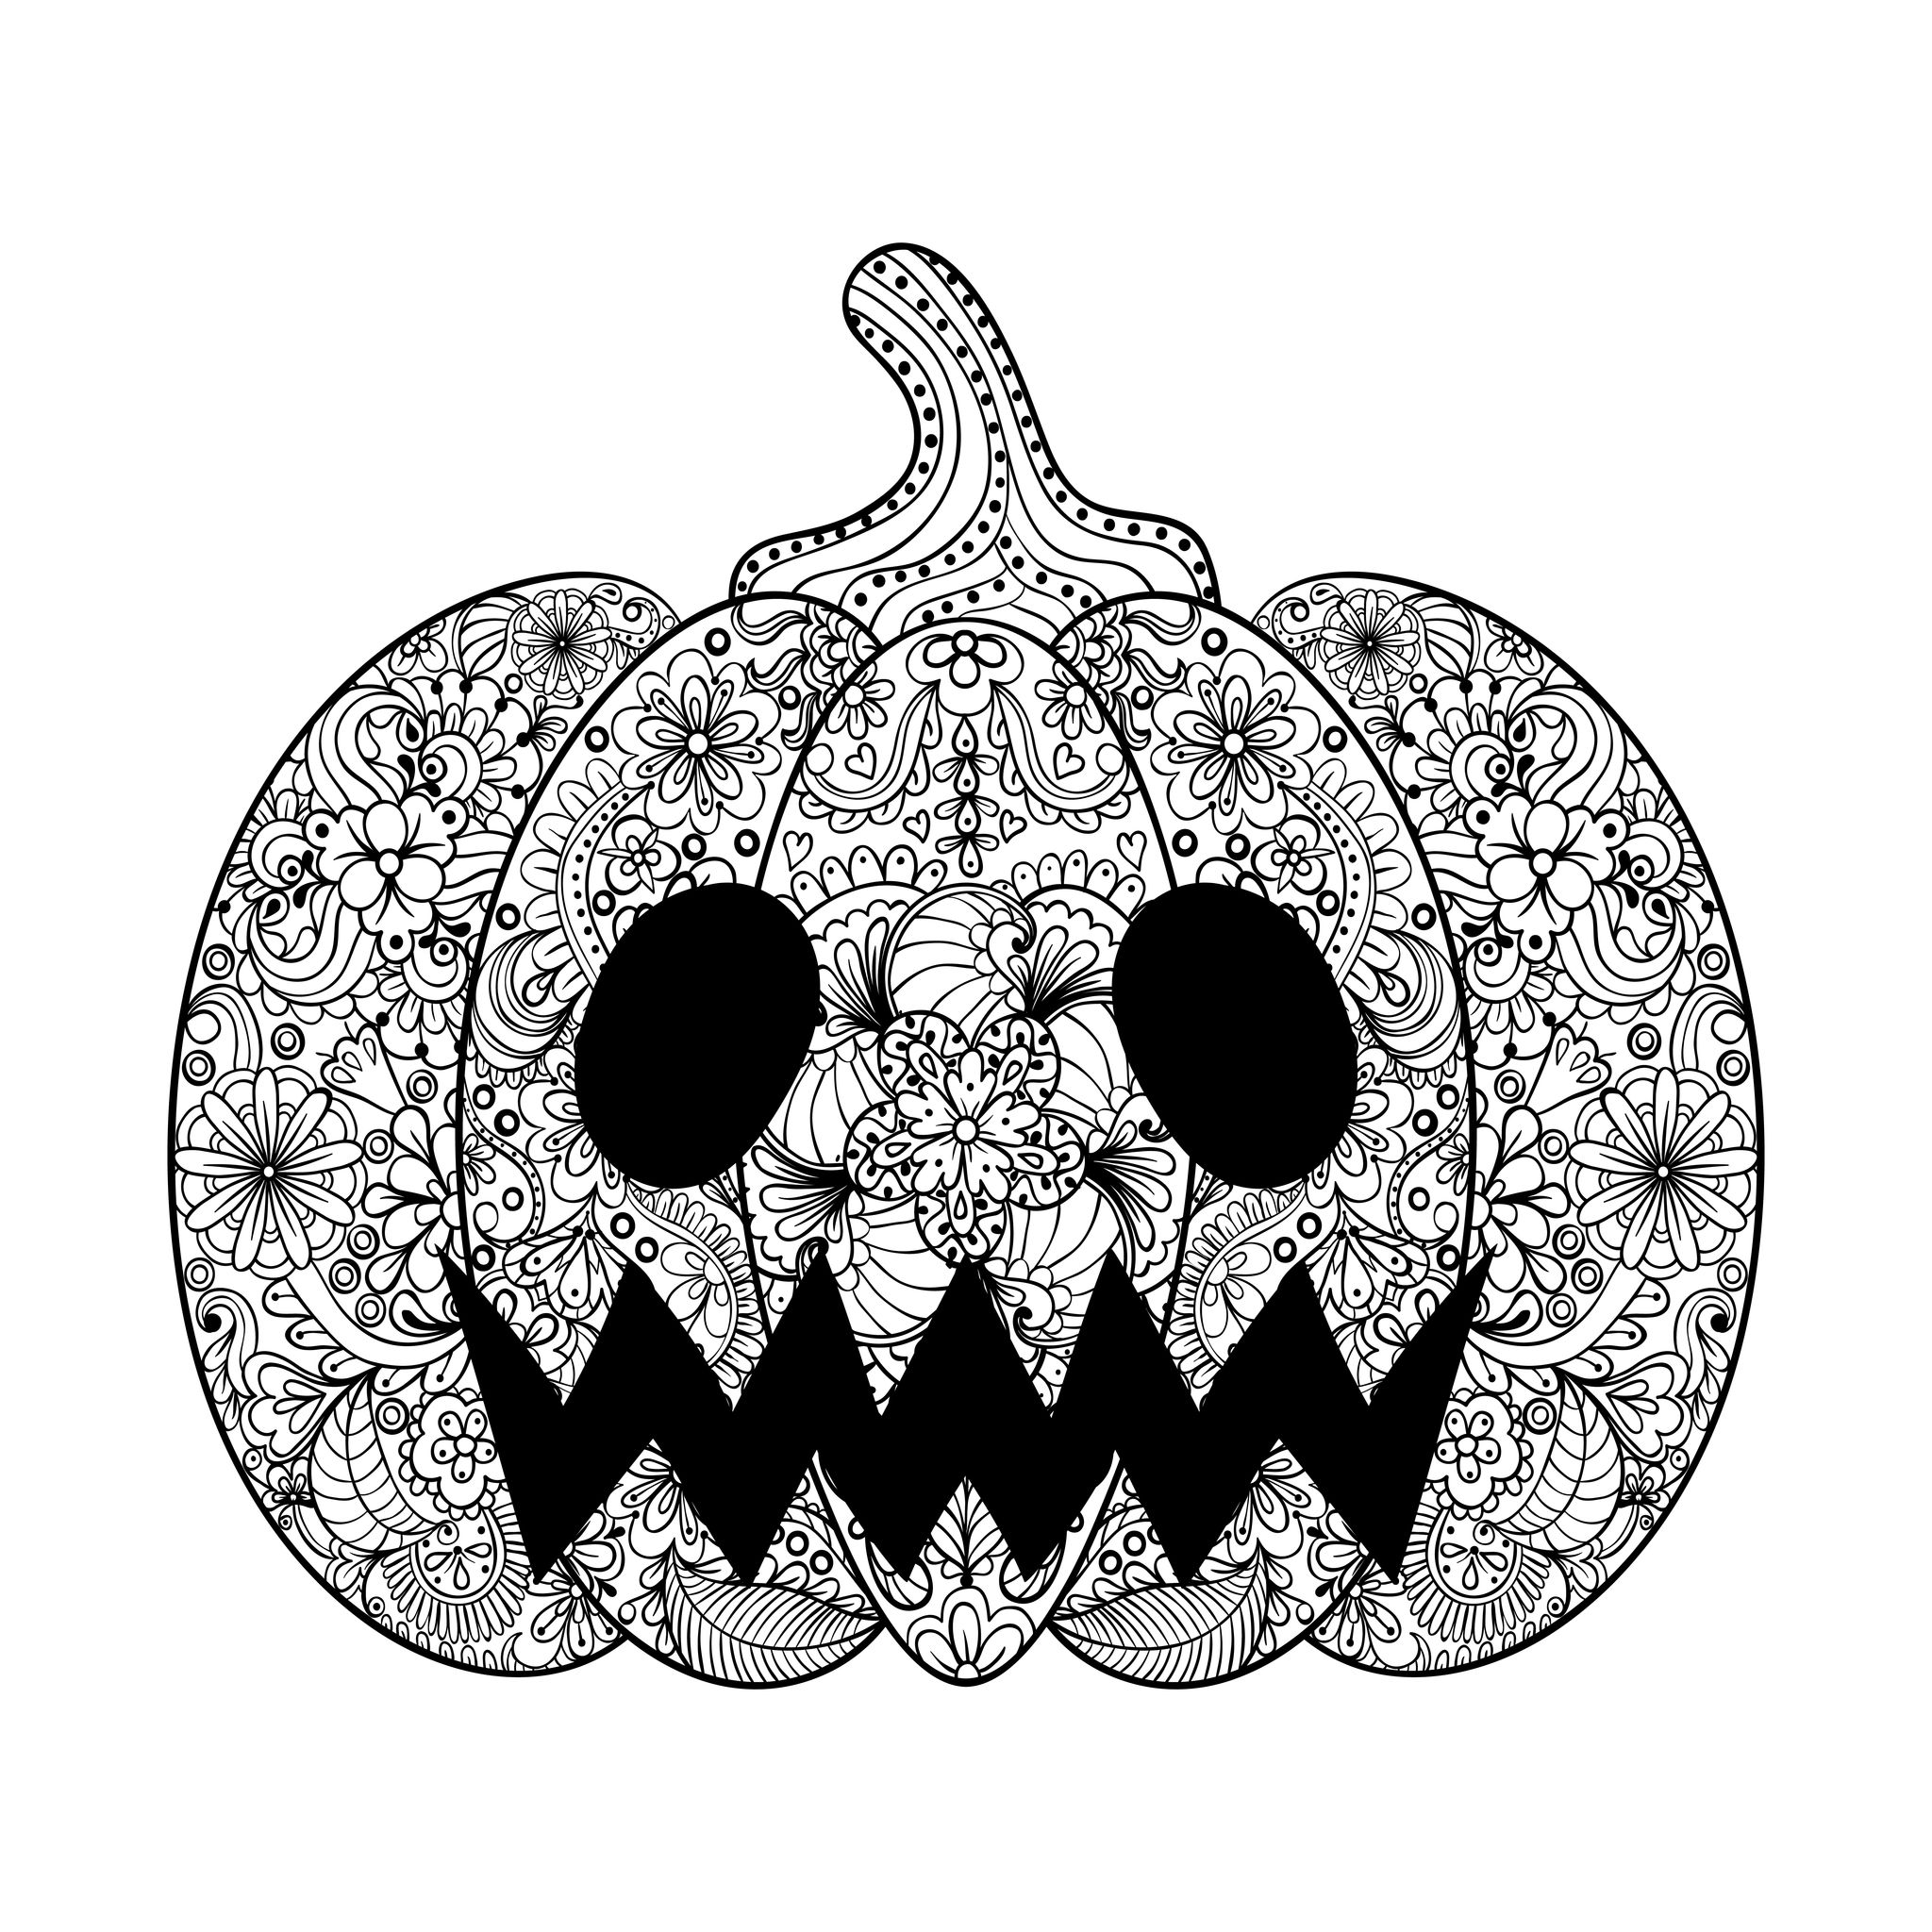 coloring halloween doodle pages halloween haunted house halloween adult coloring pages doodle pages halloween coloring